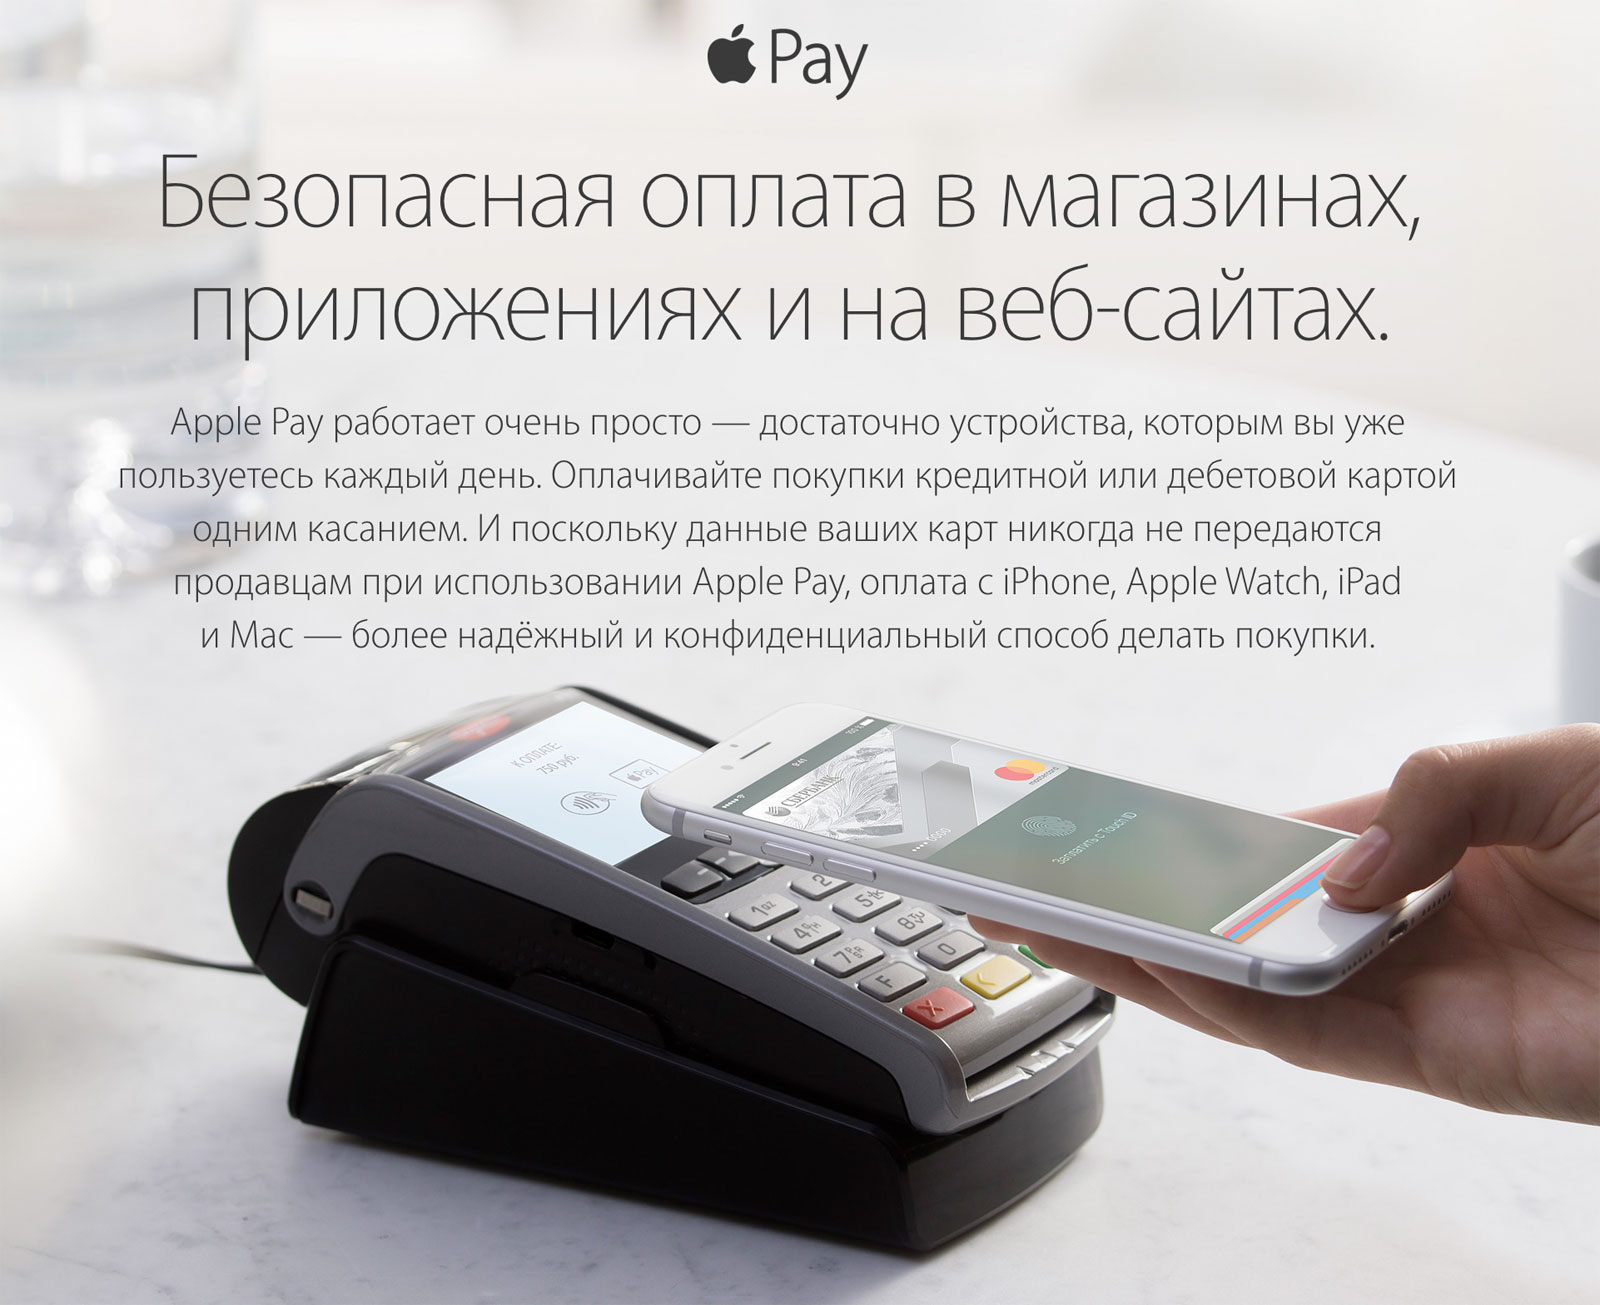 Apple Pay en Rusia